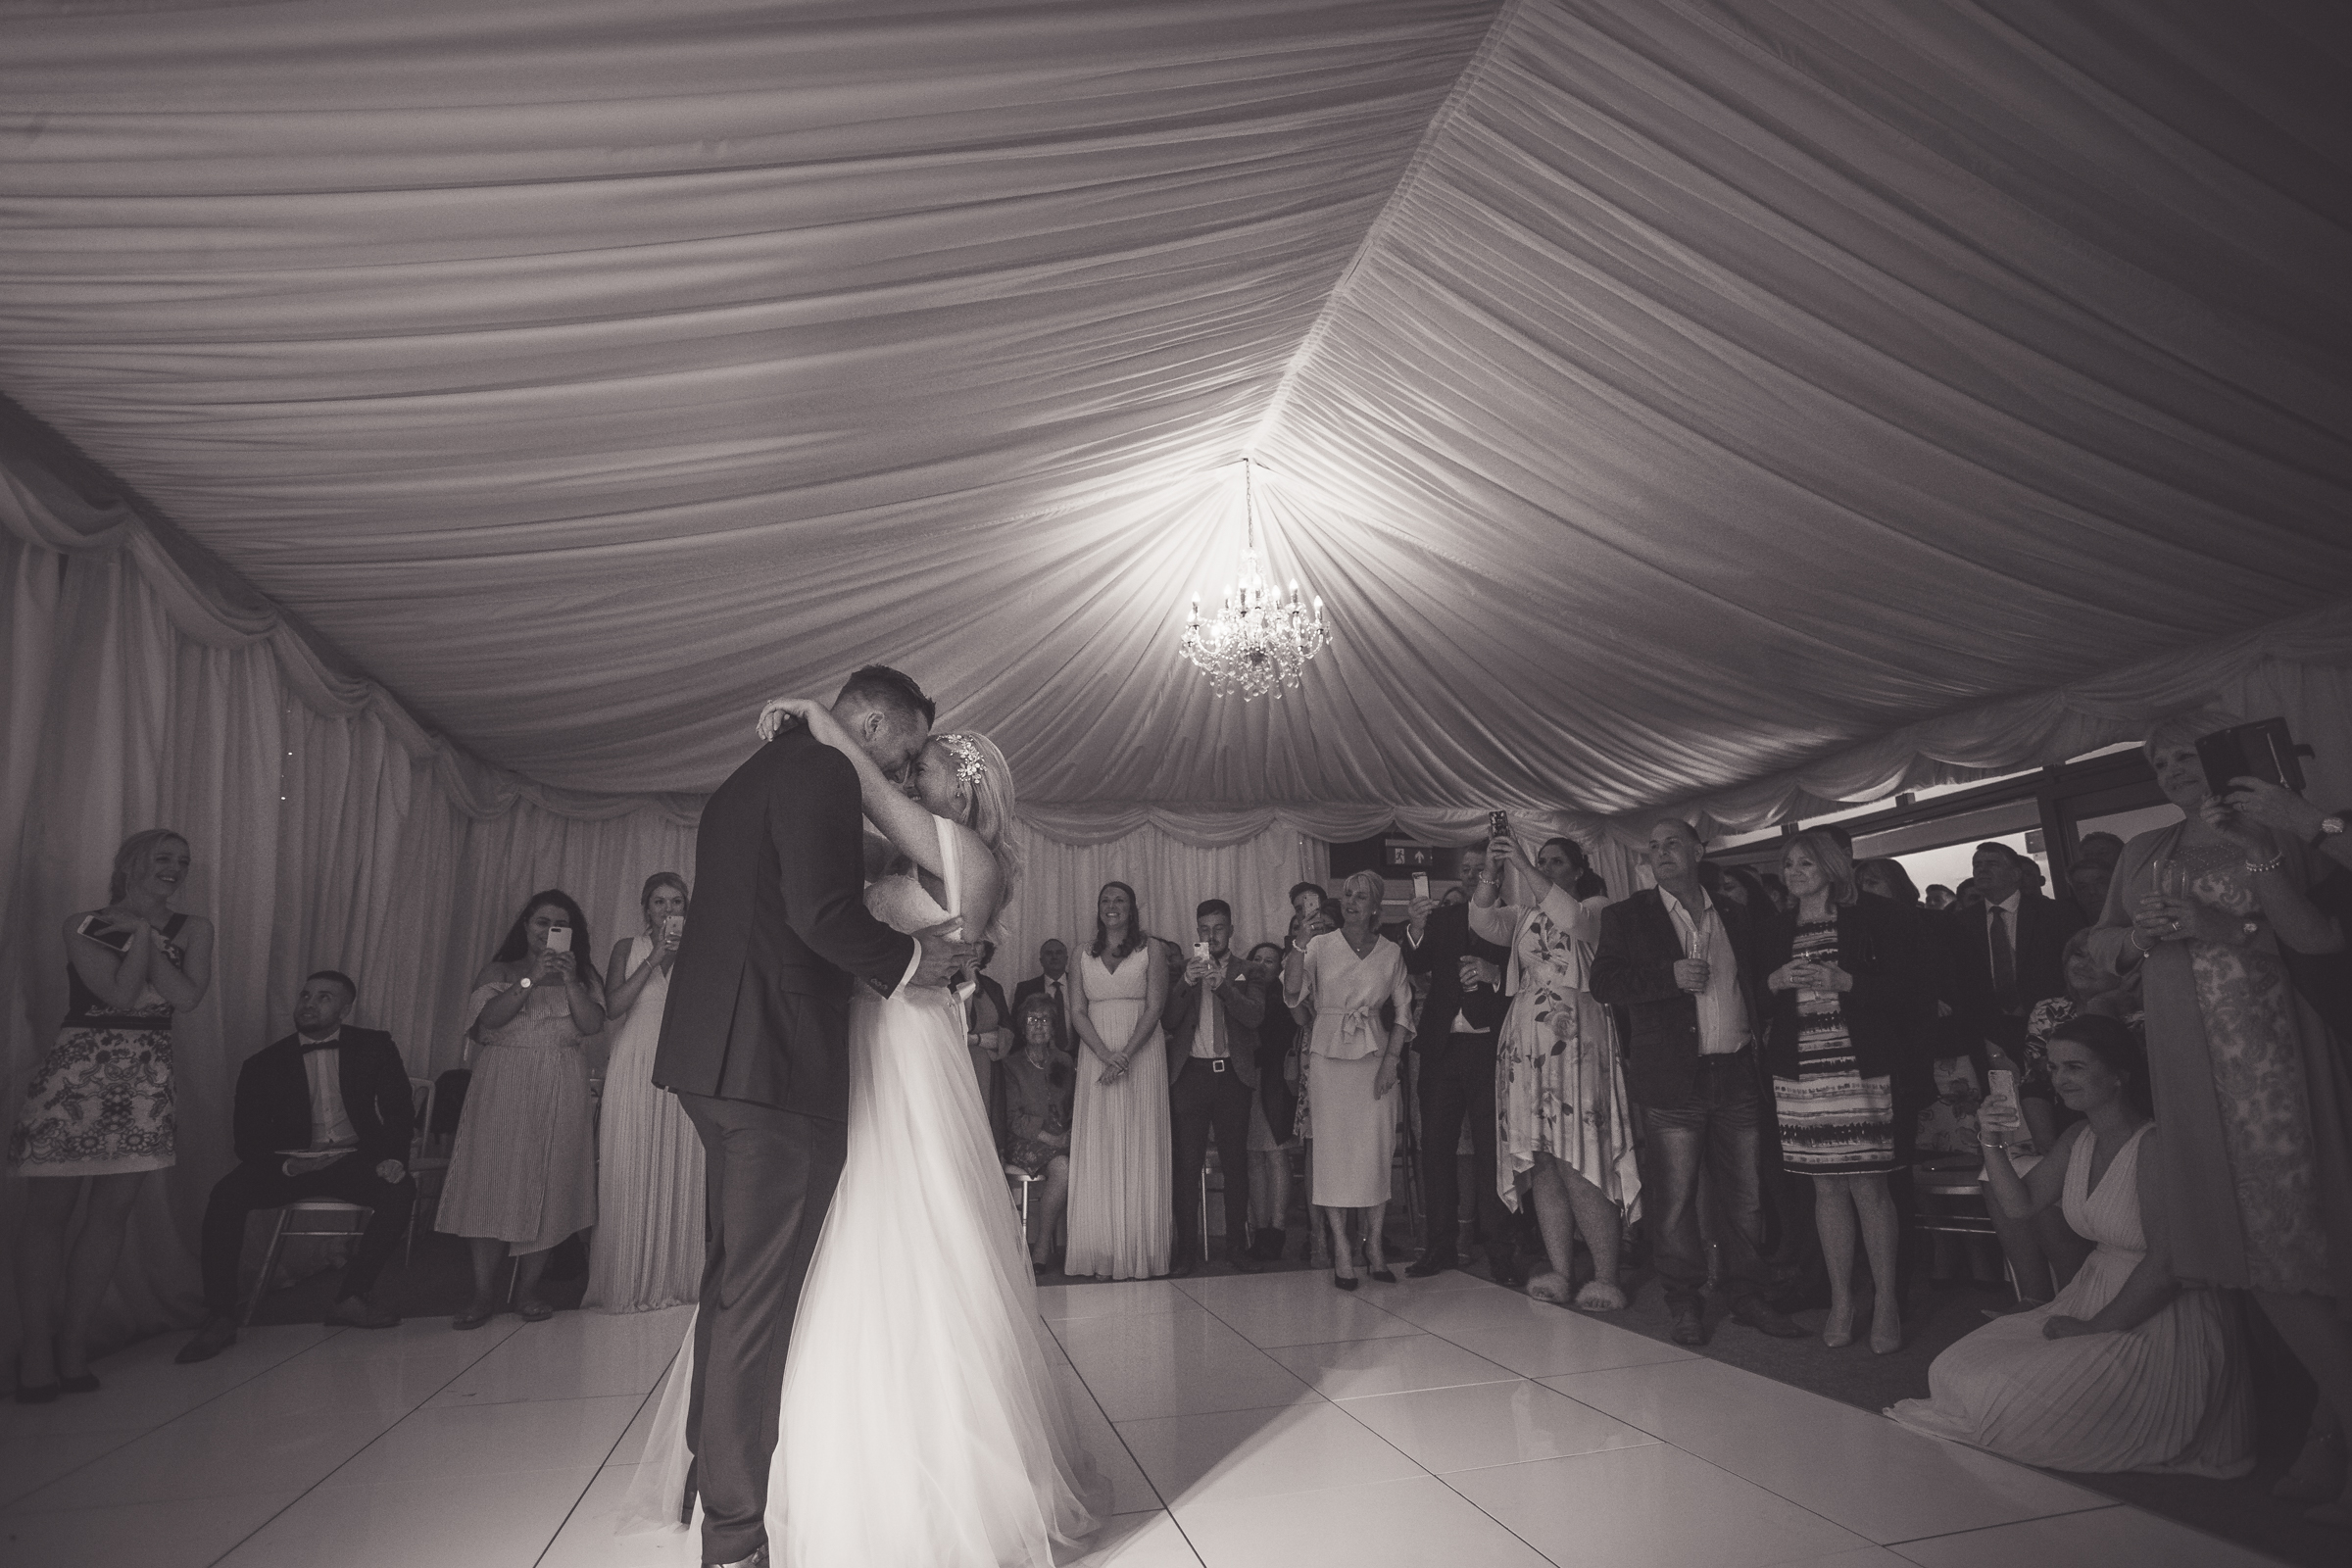 Kat and Colby's first dance, taken at Manor Hill House near Bromsgrove, the photograph is in black and white.